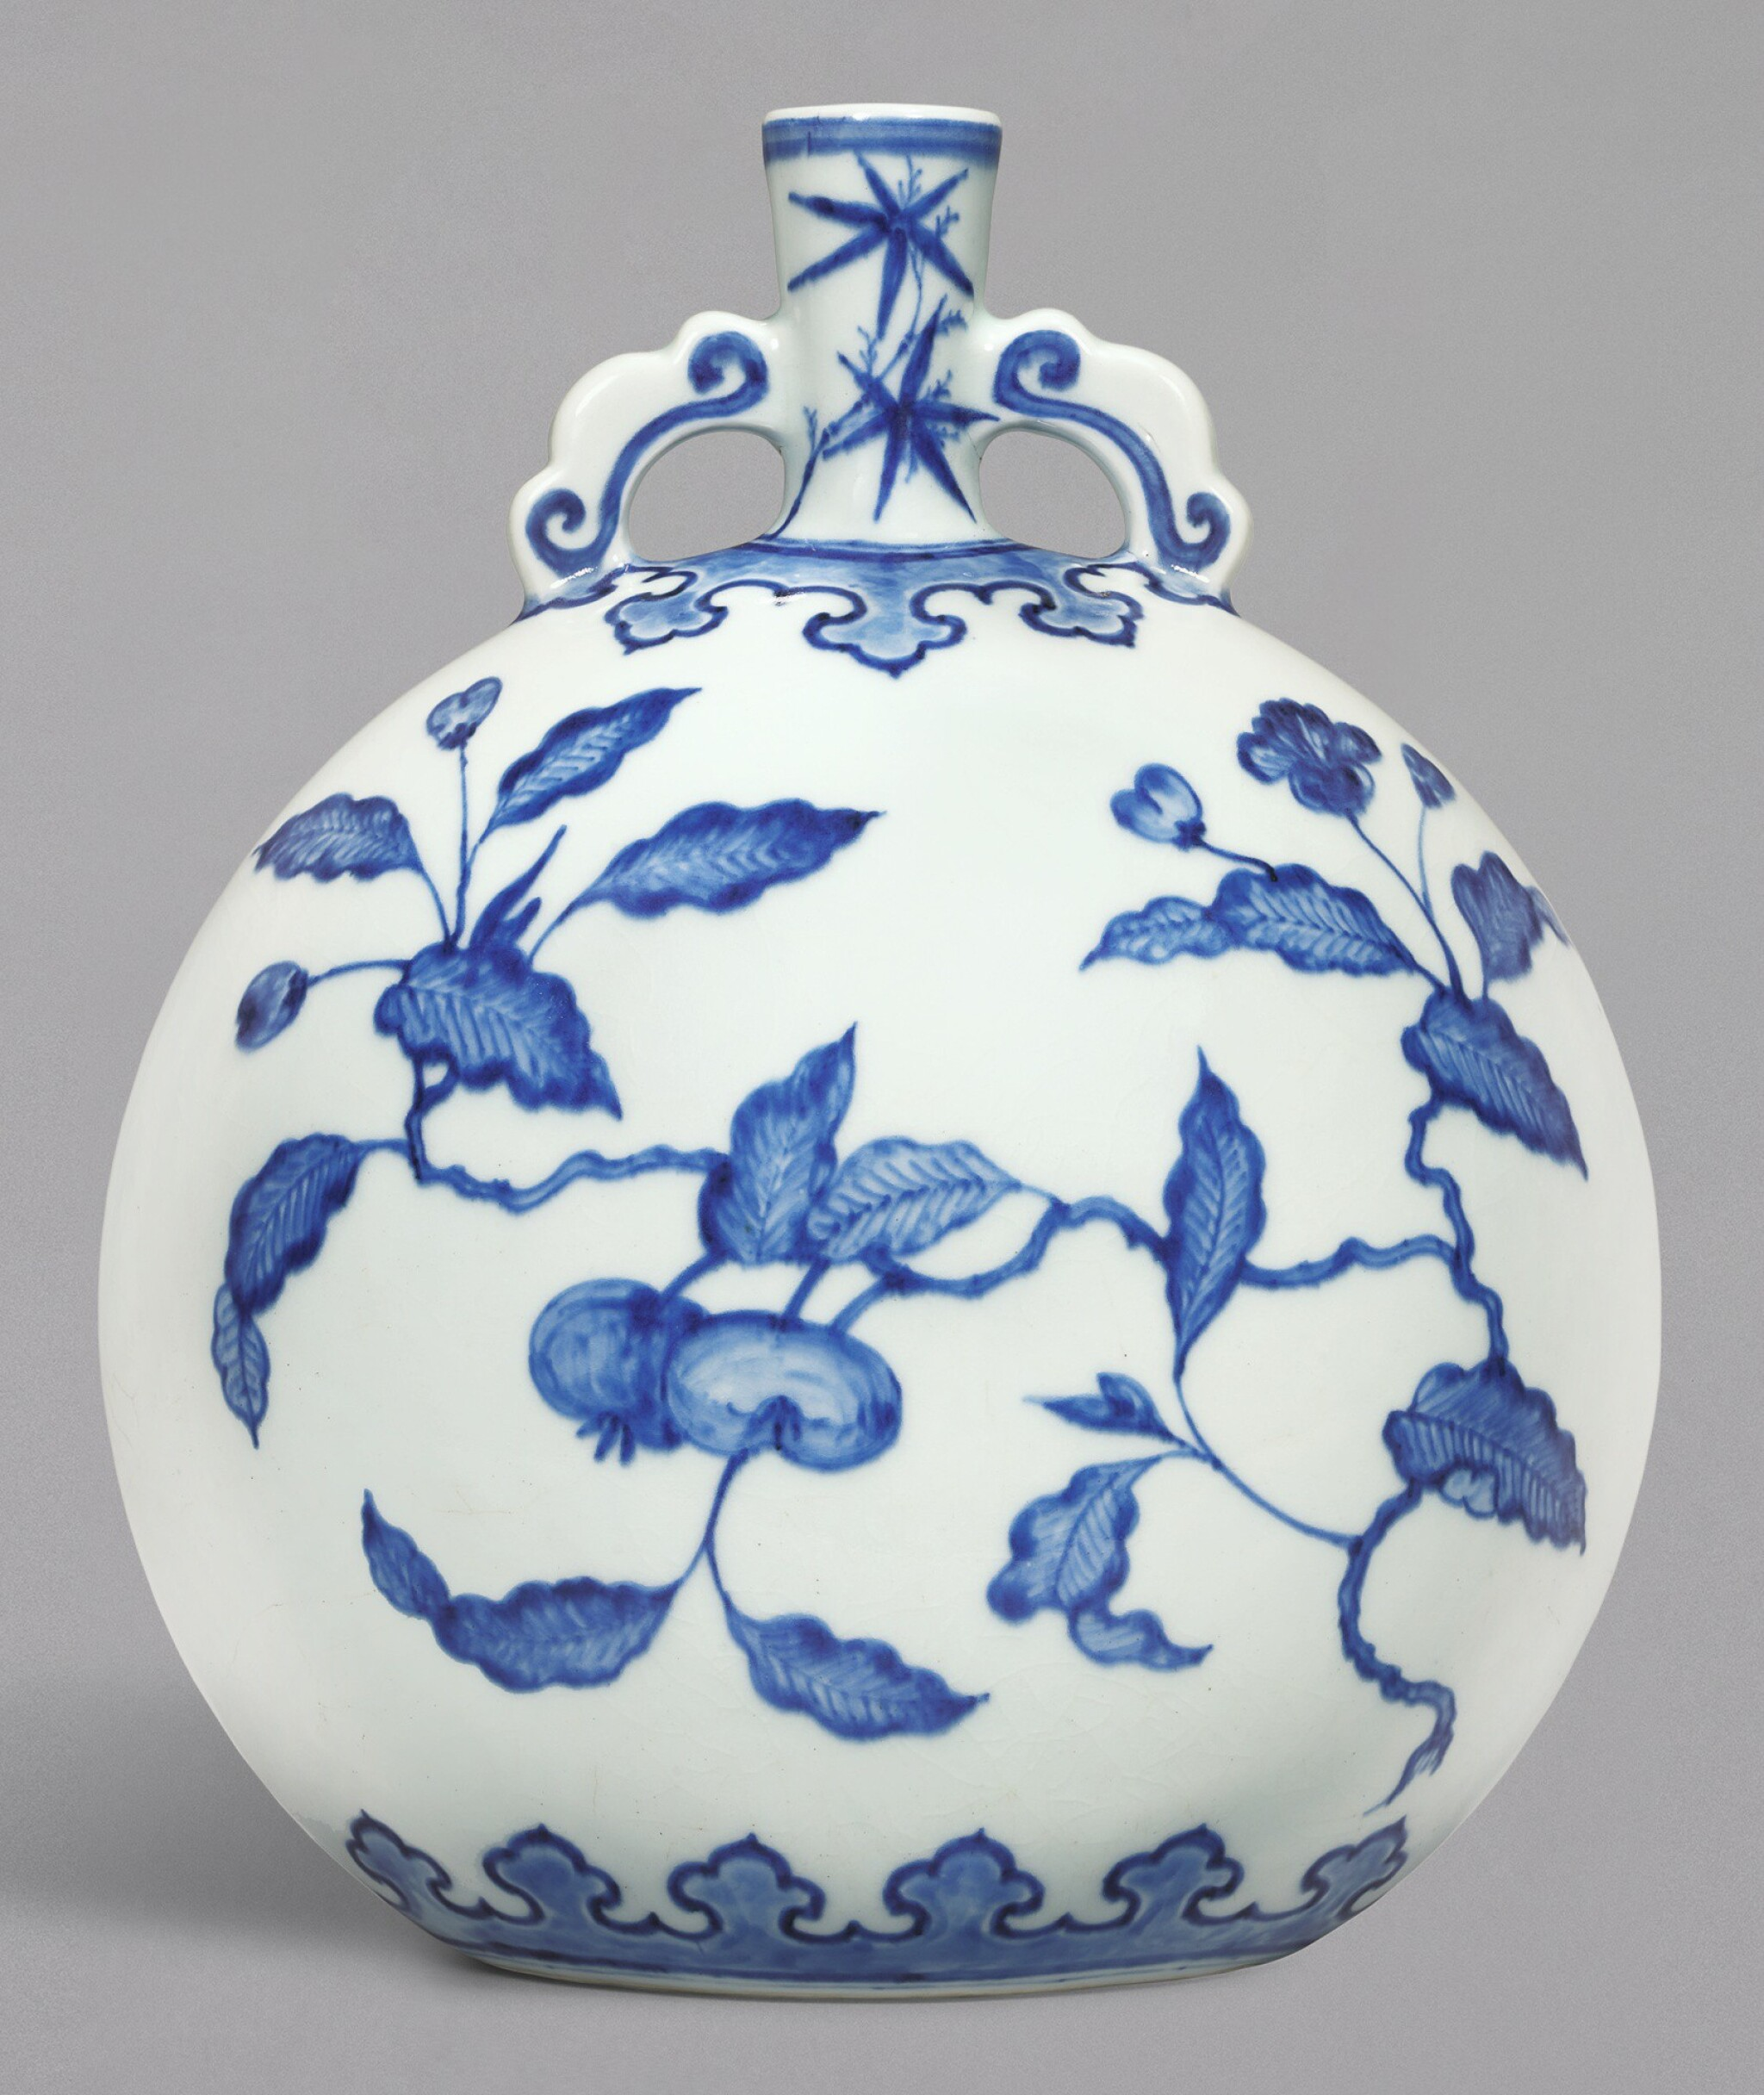 View 1 of Lot 11. A FINE BLUE AND WHITE MING-STYLE 'PERSIMMON' MOONFLASK, QING DYNASTY, YONGZHENG PERIOD | 清雍正 青花事事如意紋雙耳抱月瓶.